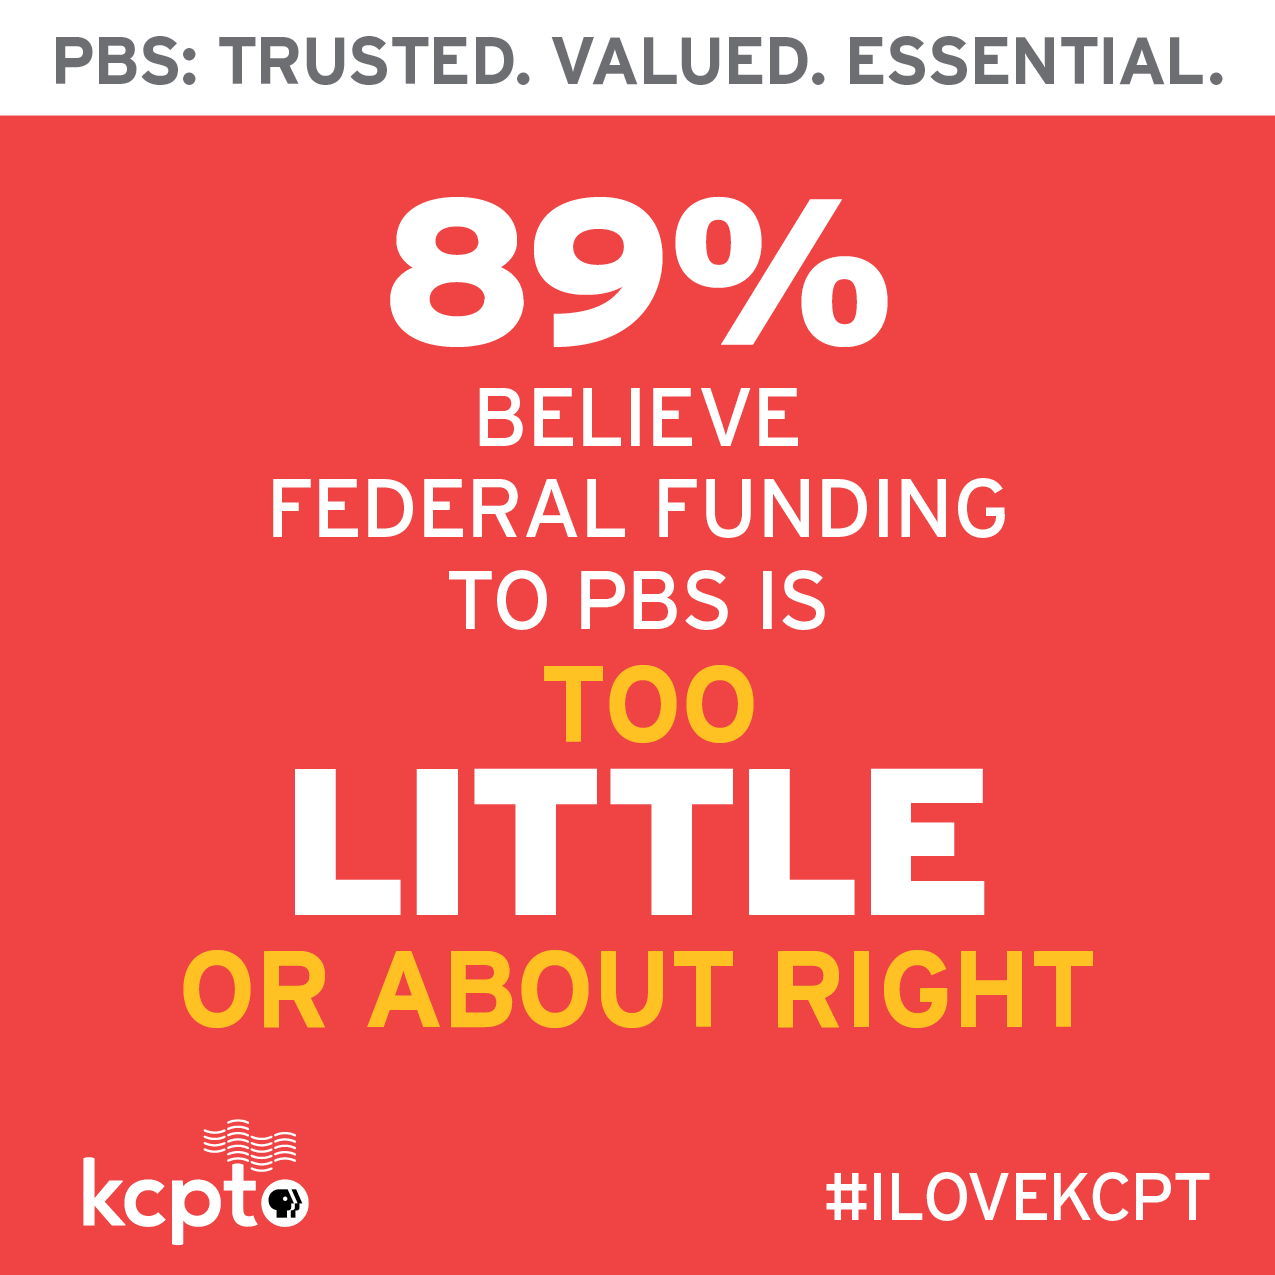 89 percent of people believe federal funding for PBS is too little or about right.